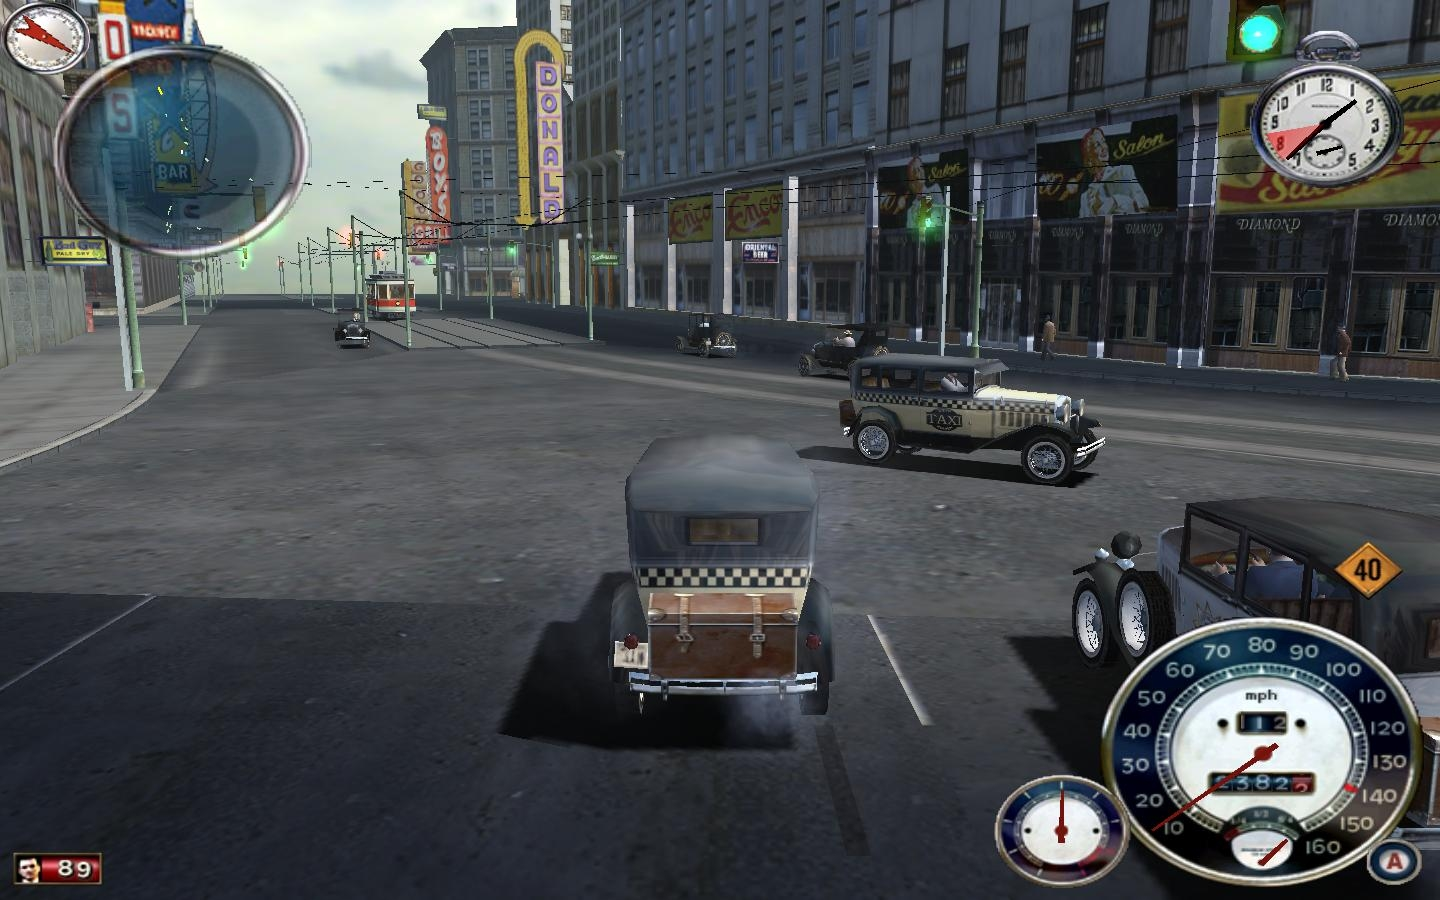 Download game pc gta 4 highly compressed